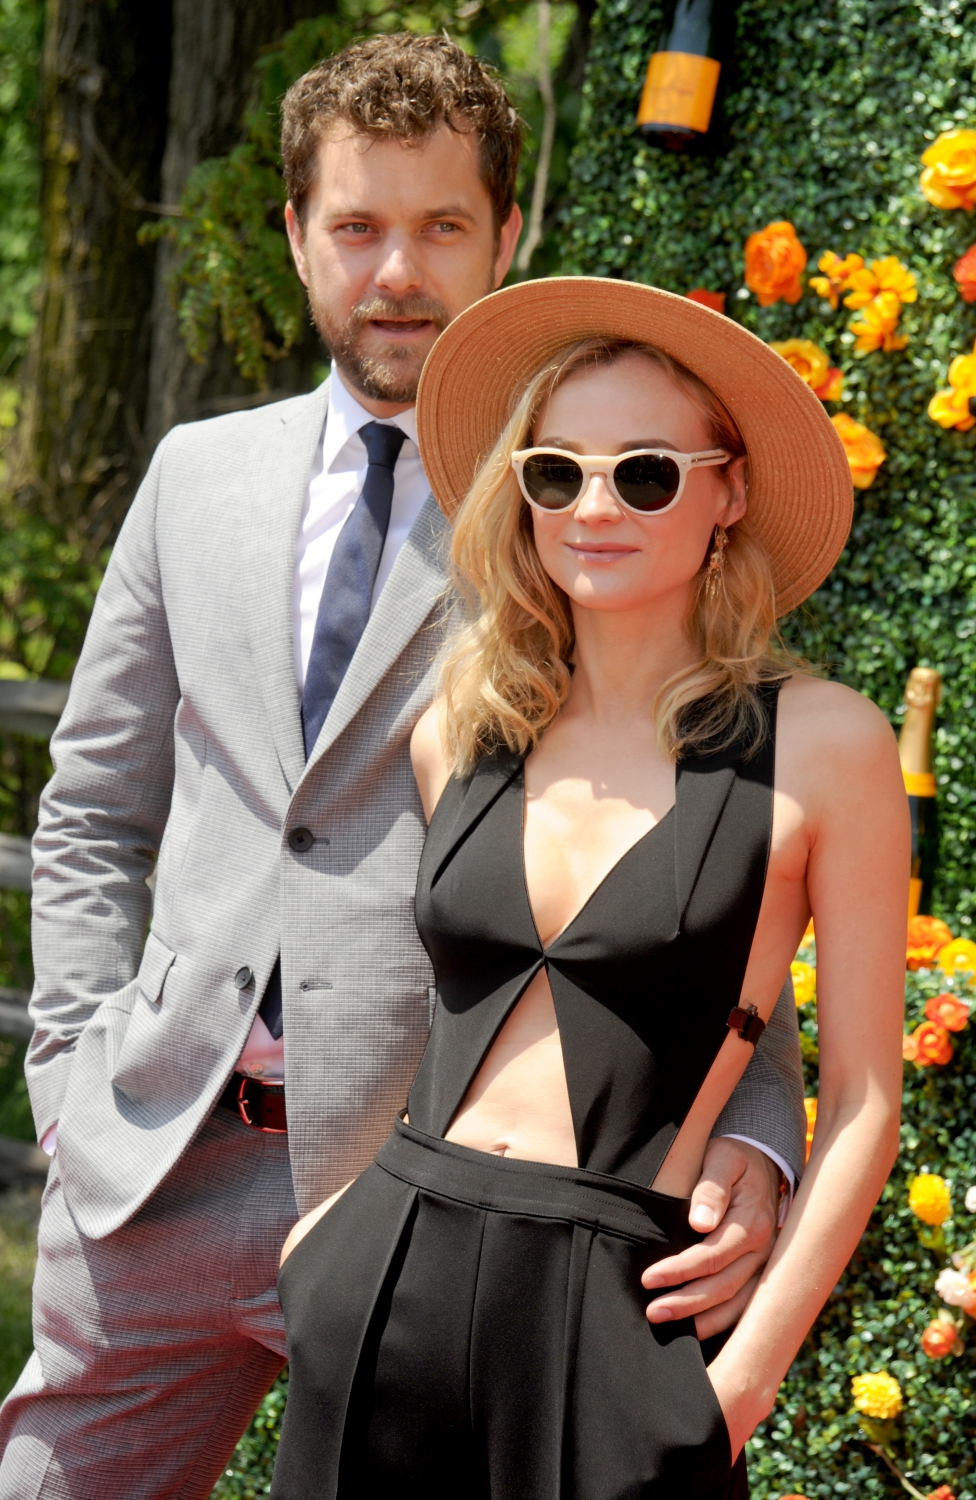 diane kruger et joshua jackson si chic pour le veuve cliquot polo classic elle. Black Bedroom Furniture Sets. Home Design Ideas